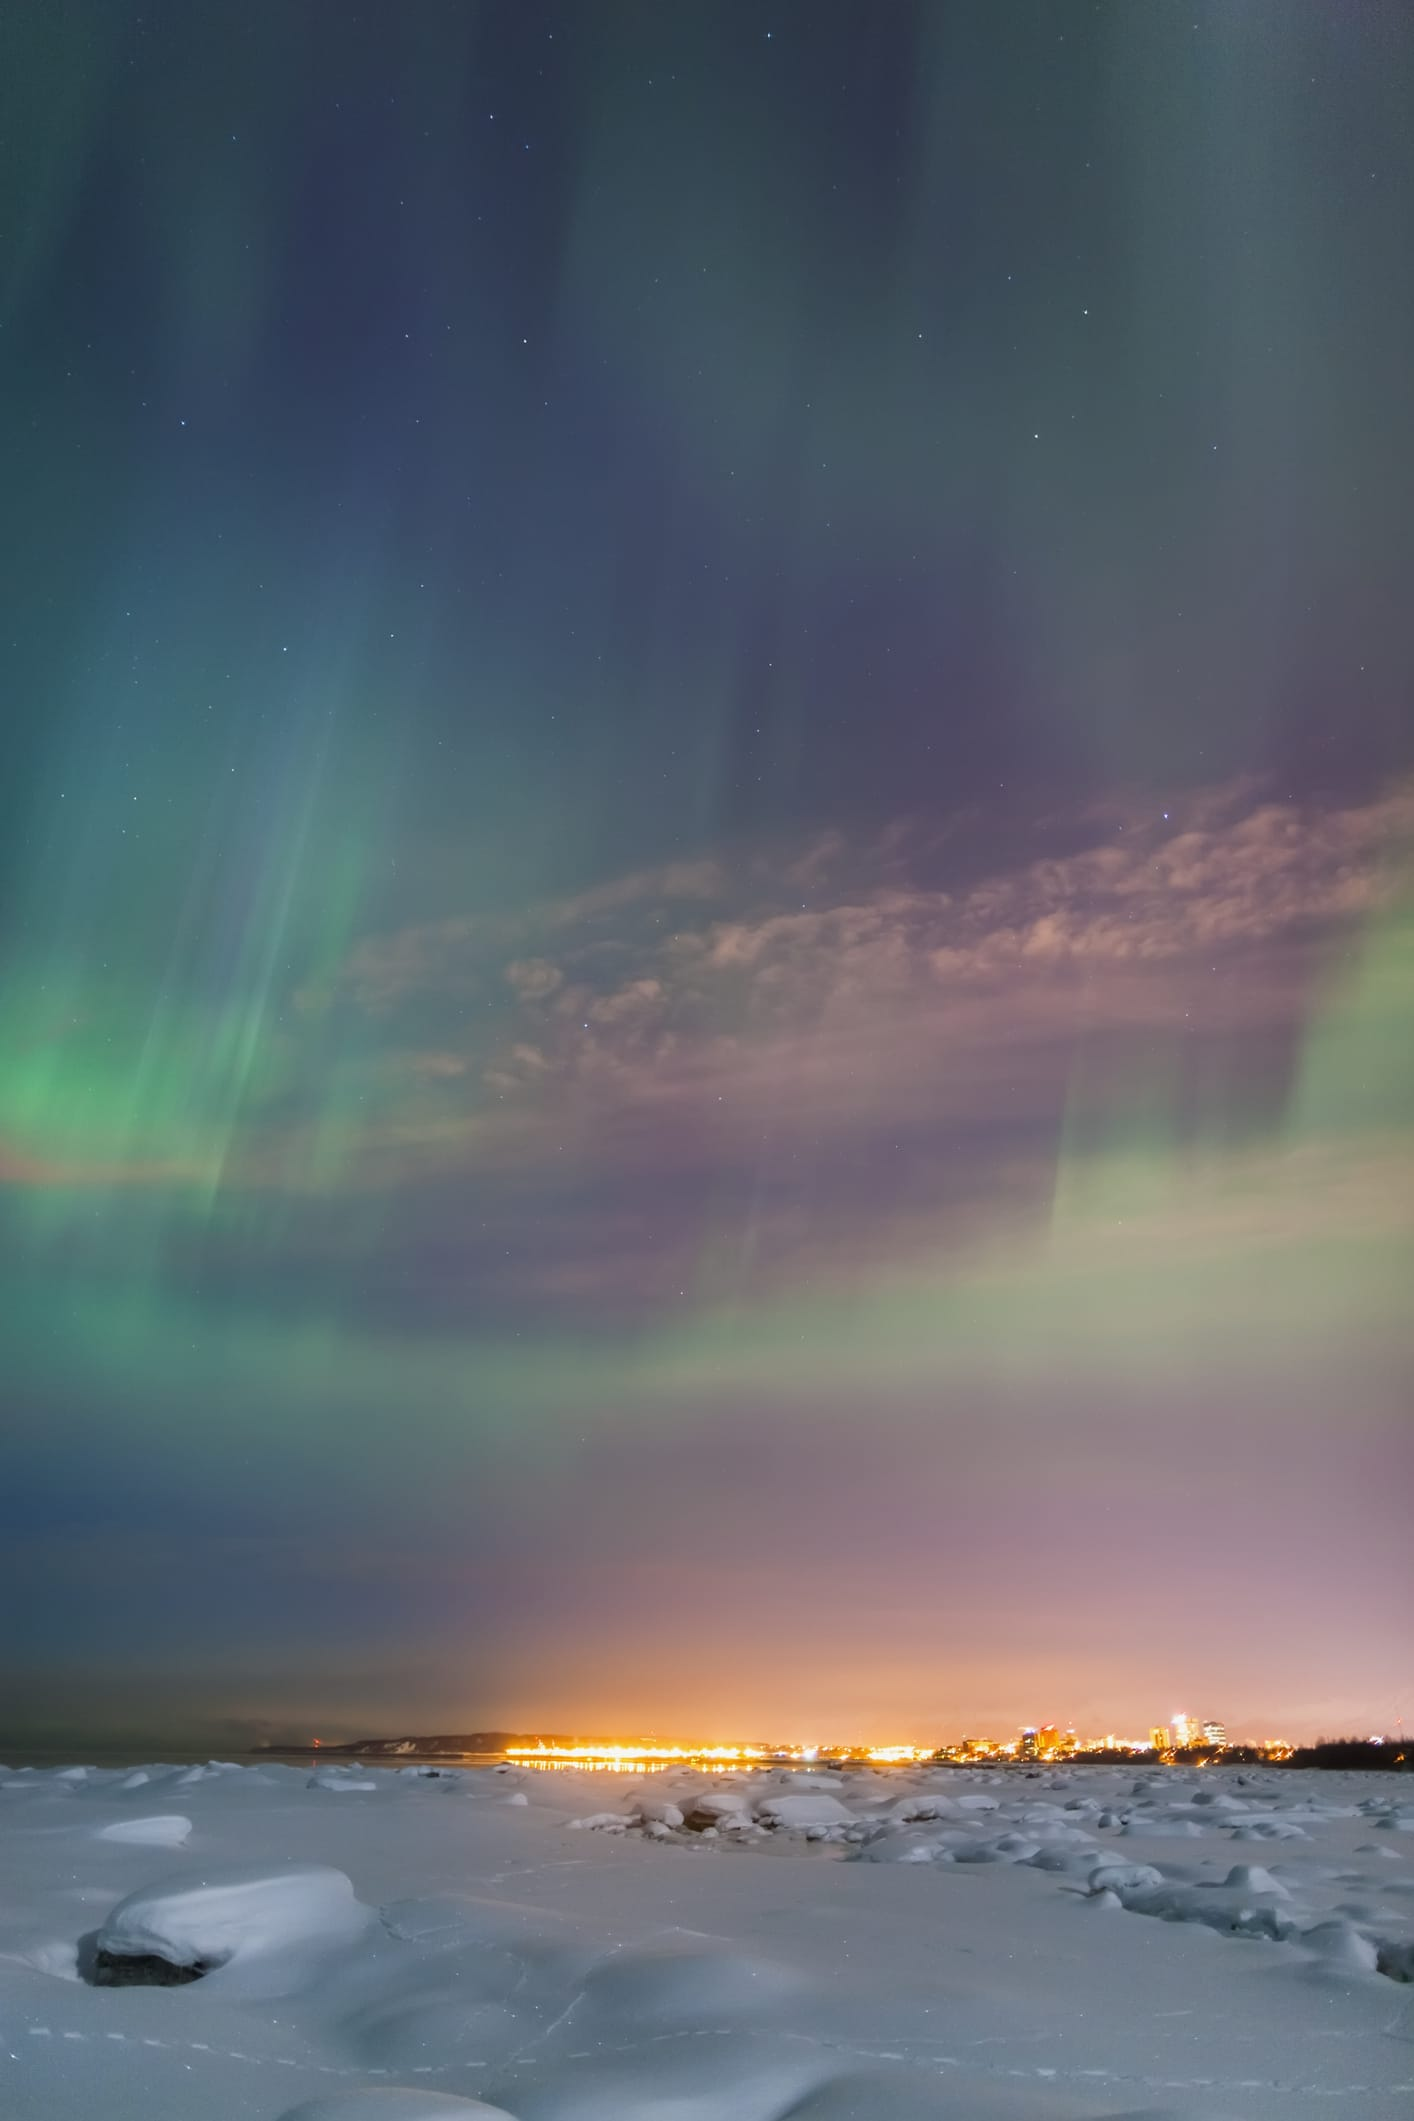 Northern lights over Anchorage